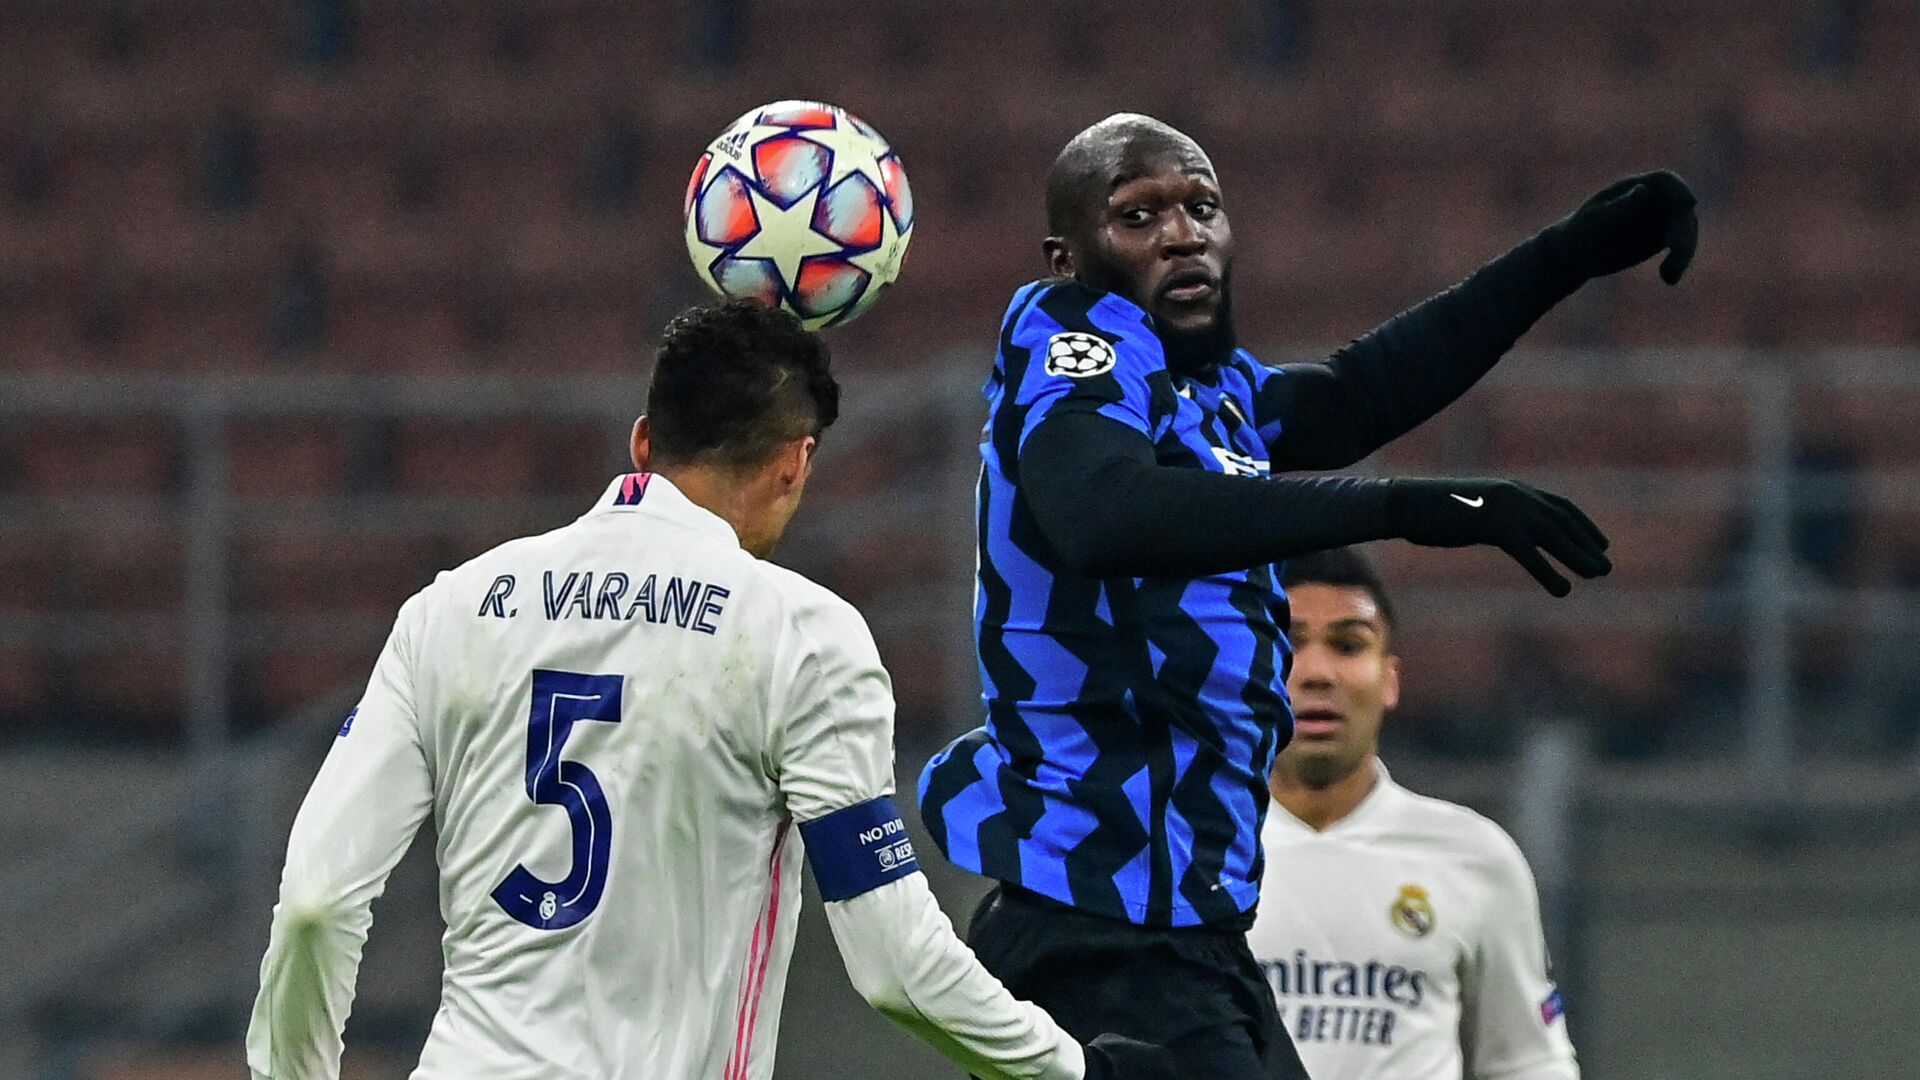 Real Madrid's French defender Raphael Varane (L) and Inter Milan's Belgian forward Romelu Lukaku go for a header during the UEFA Champions League Group B football match Inter Milan vs Real Madrid on November 25, 2020 at the Giuseppe-Meazza (San Siro) stadium in Milan. (Photo by MIGUEL MEDINA / AFP) - РИА Новости, 1920, 26.11.2020